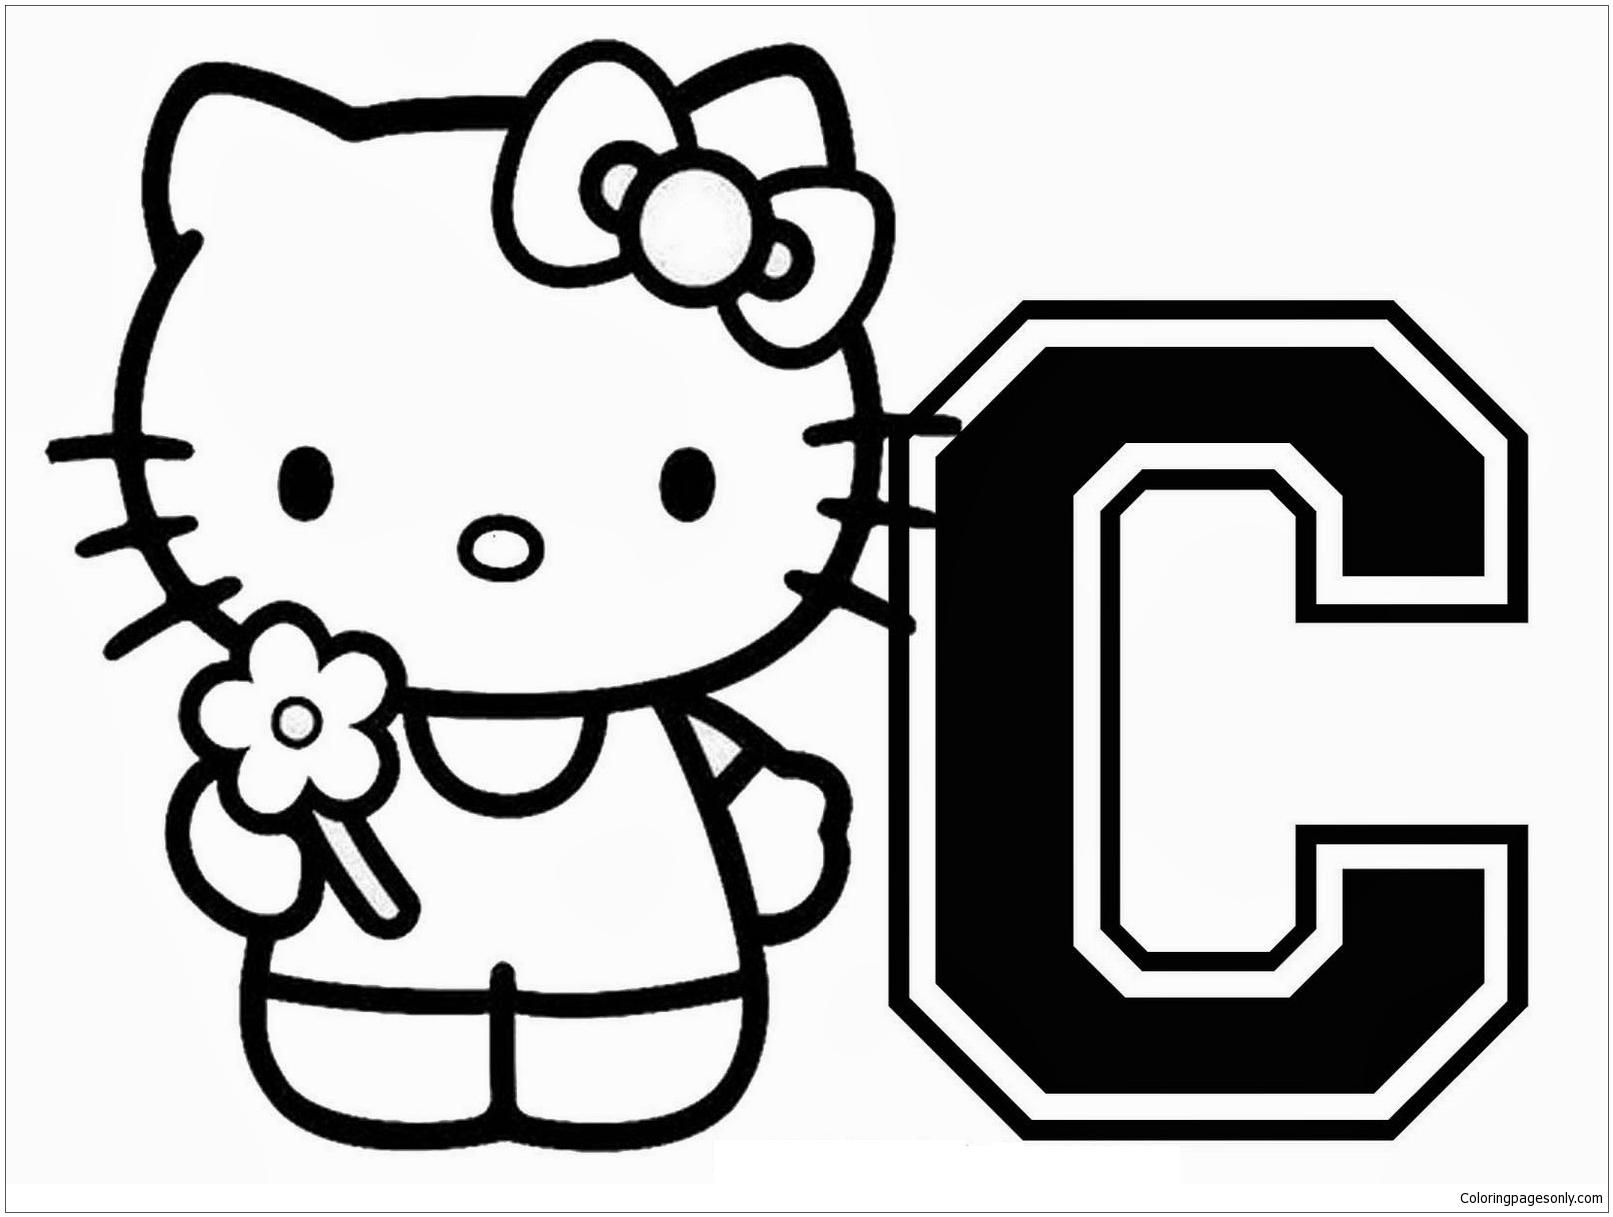 10 Letter C Coloring Pages Free Coloriage Hello Kitty Chat Hello Kitty Coloriage Gratuit